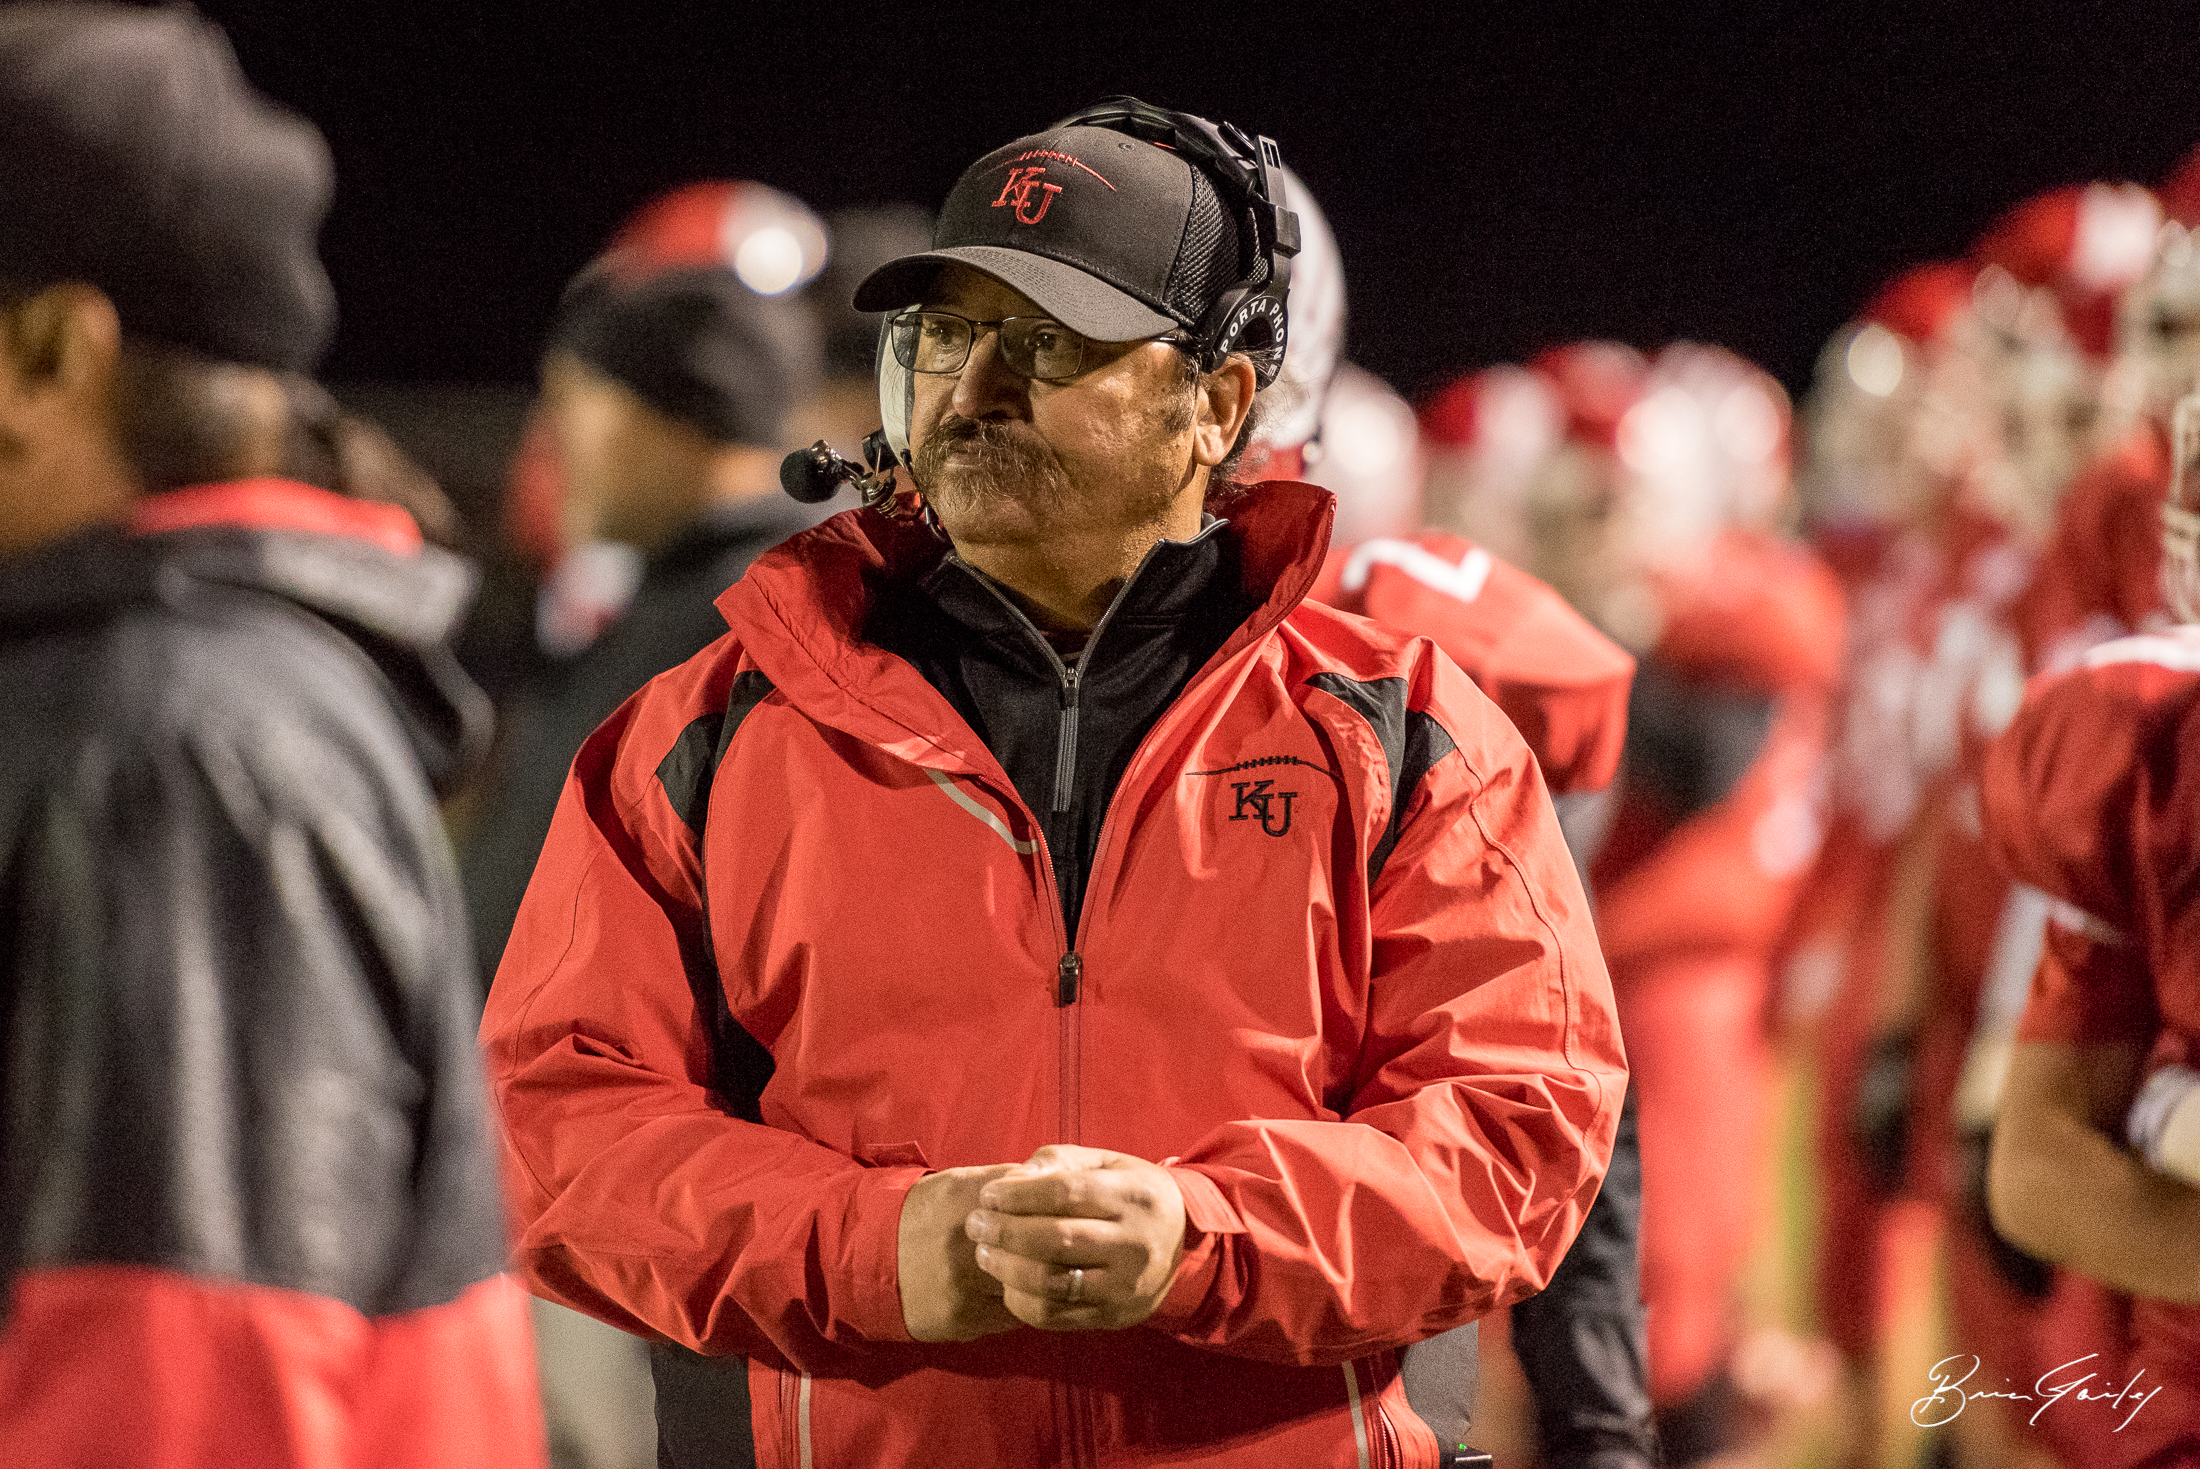 Klamath Union is defeated but not discouraged. The coaching staff will have this next week to prepare the team for Mazama.